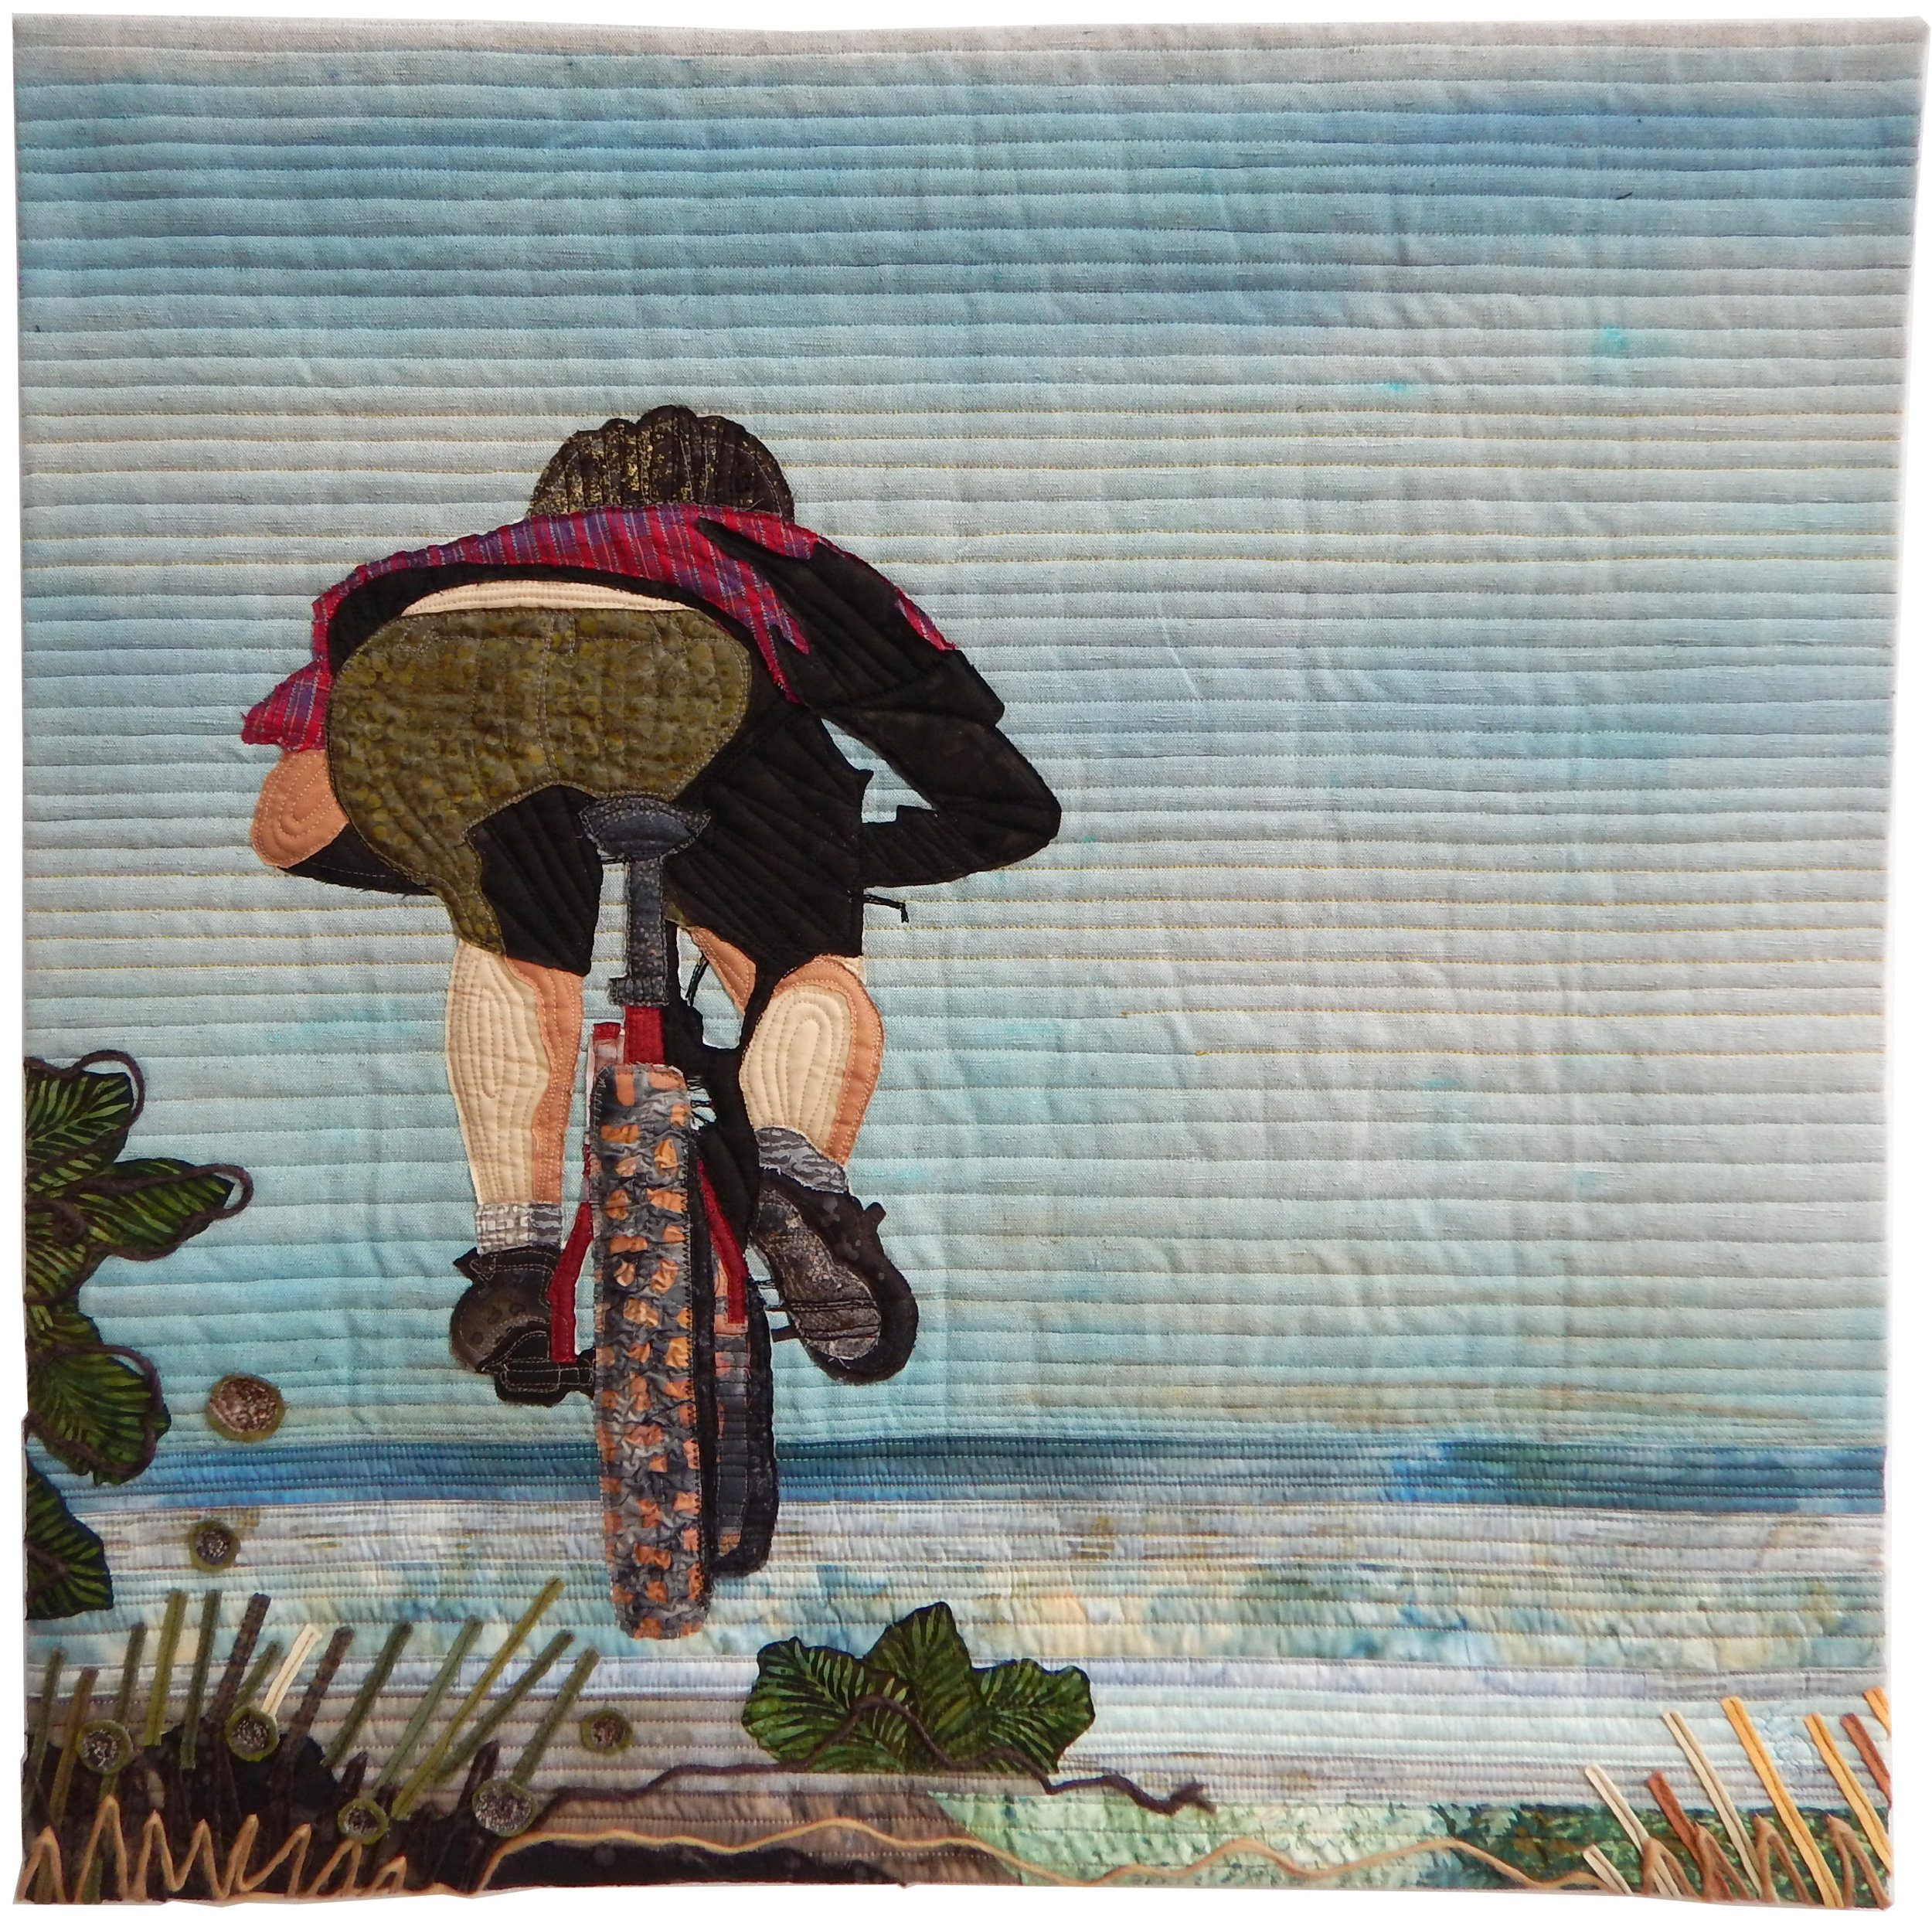 """Ride like the wind - 30"""" x 30""""I draw my inspiration from many memorable hours spent riding beautiful roads and trails at many places in the world on my mountain bike. I can vividly recall the pure thrill of adventure - from climbing treacherous, rocky stump-strewn trails to being rewarded with gorgeous panoramic views from mountain tops. I try to live my life with the road trip metaphor - always plan something that keeps you looking ahead and anxious to see what's just over the next rise. And enjoy the ride!"""